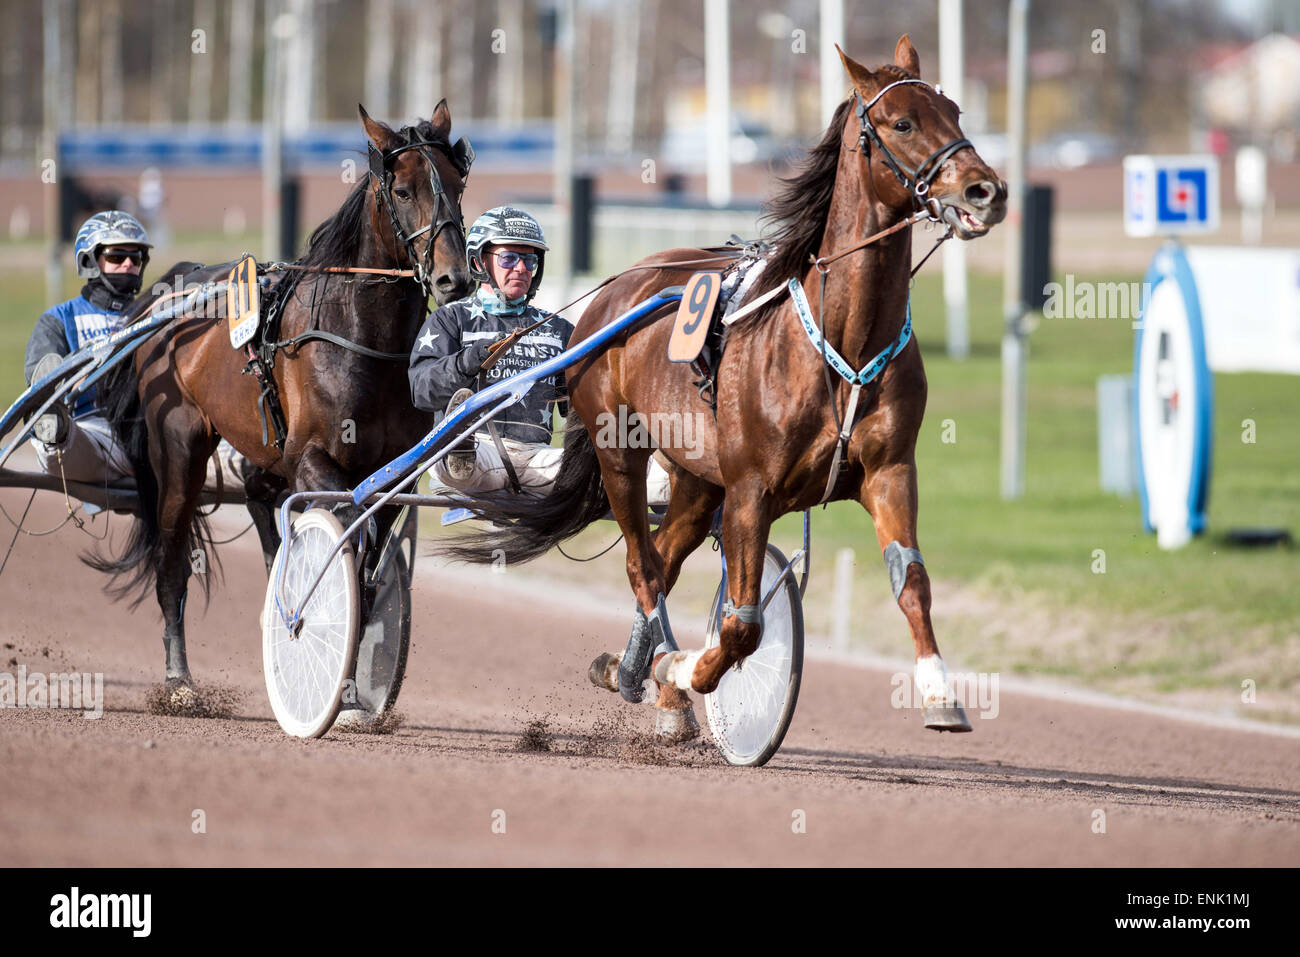 Harness racing at Mantorp race course in Sweden - Stock Image